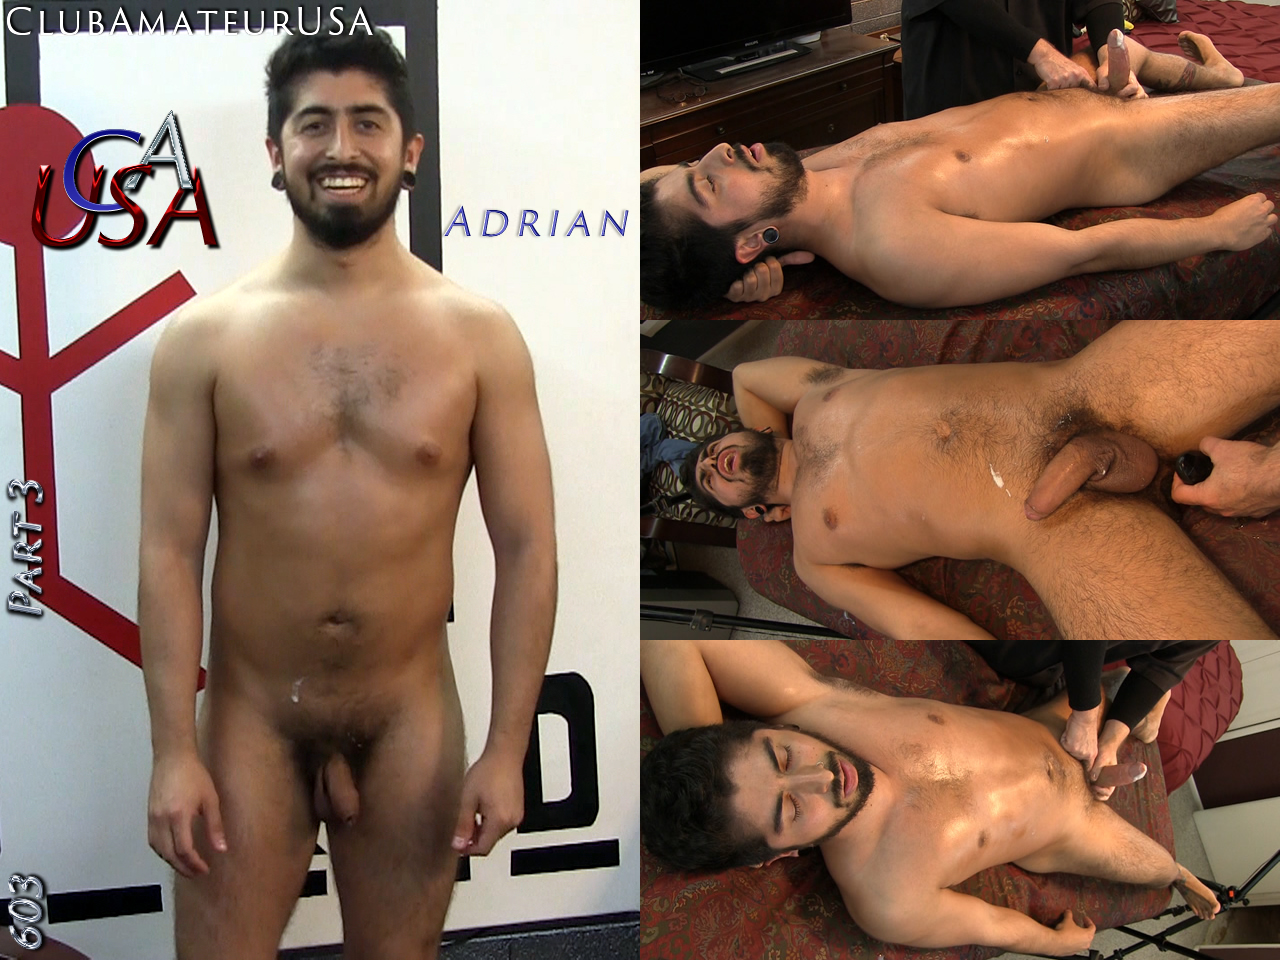 Download or Stream CAUSA 603 Adrian - Part 3 - Click Here Now